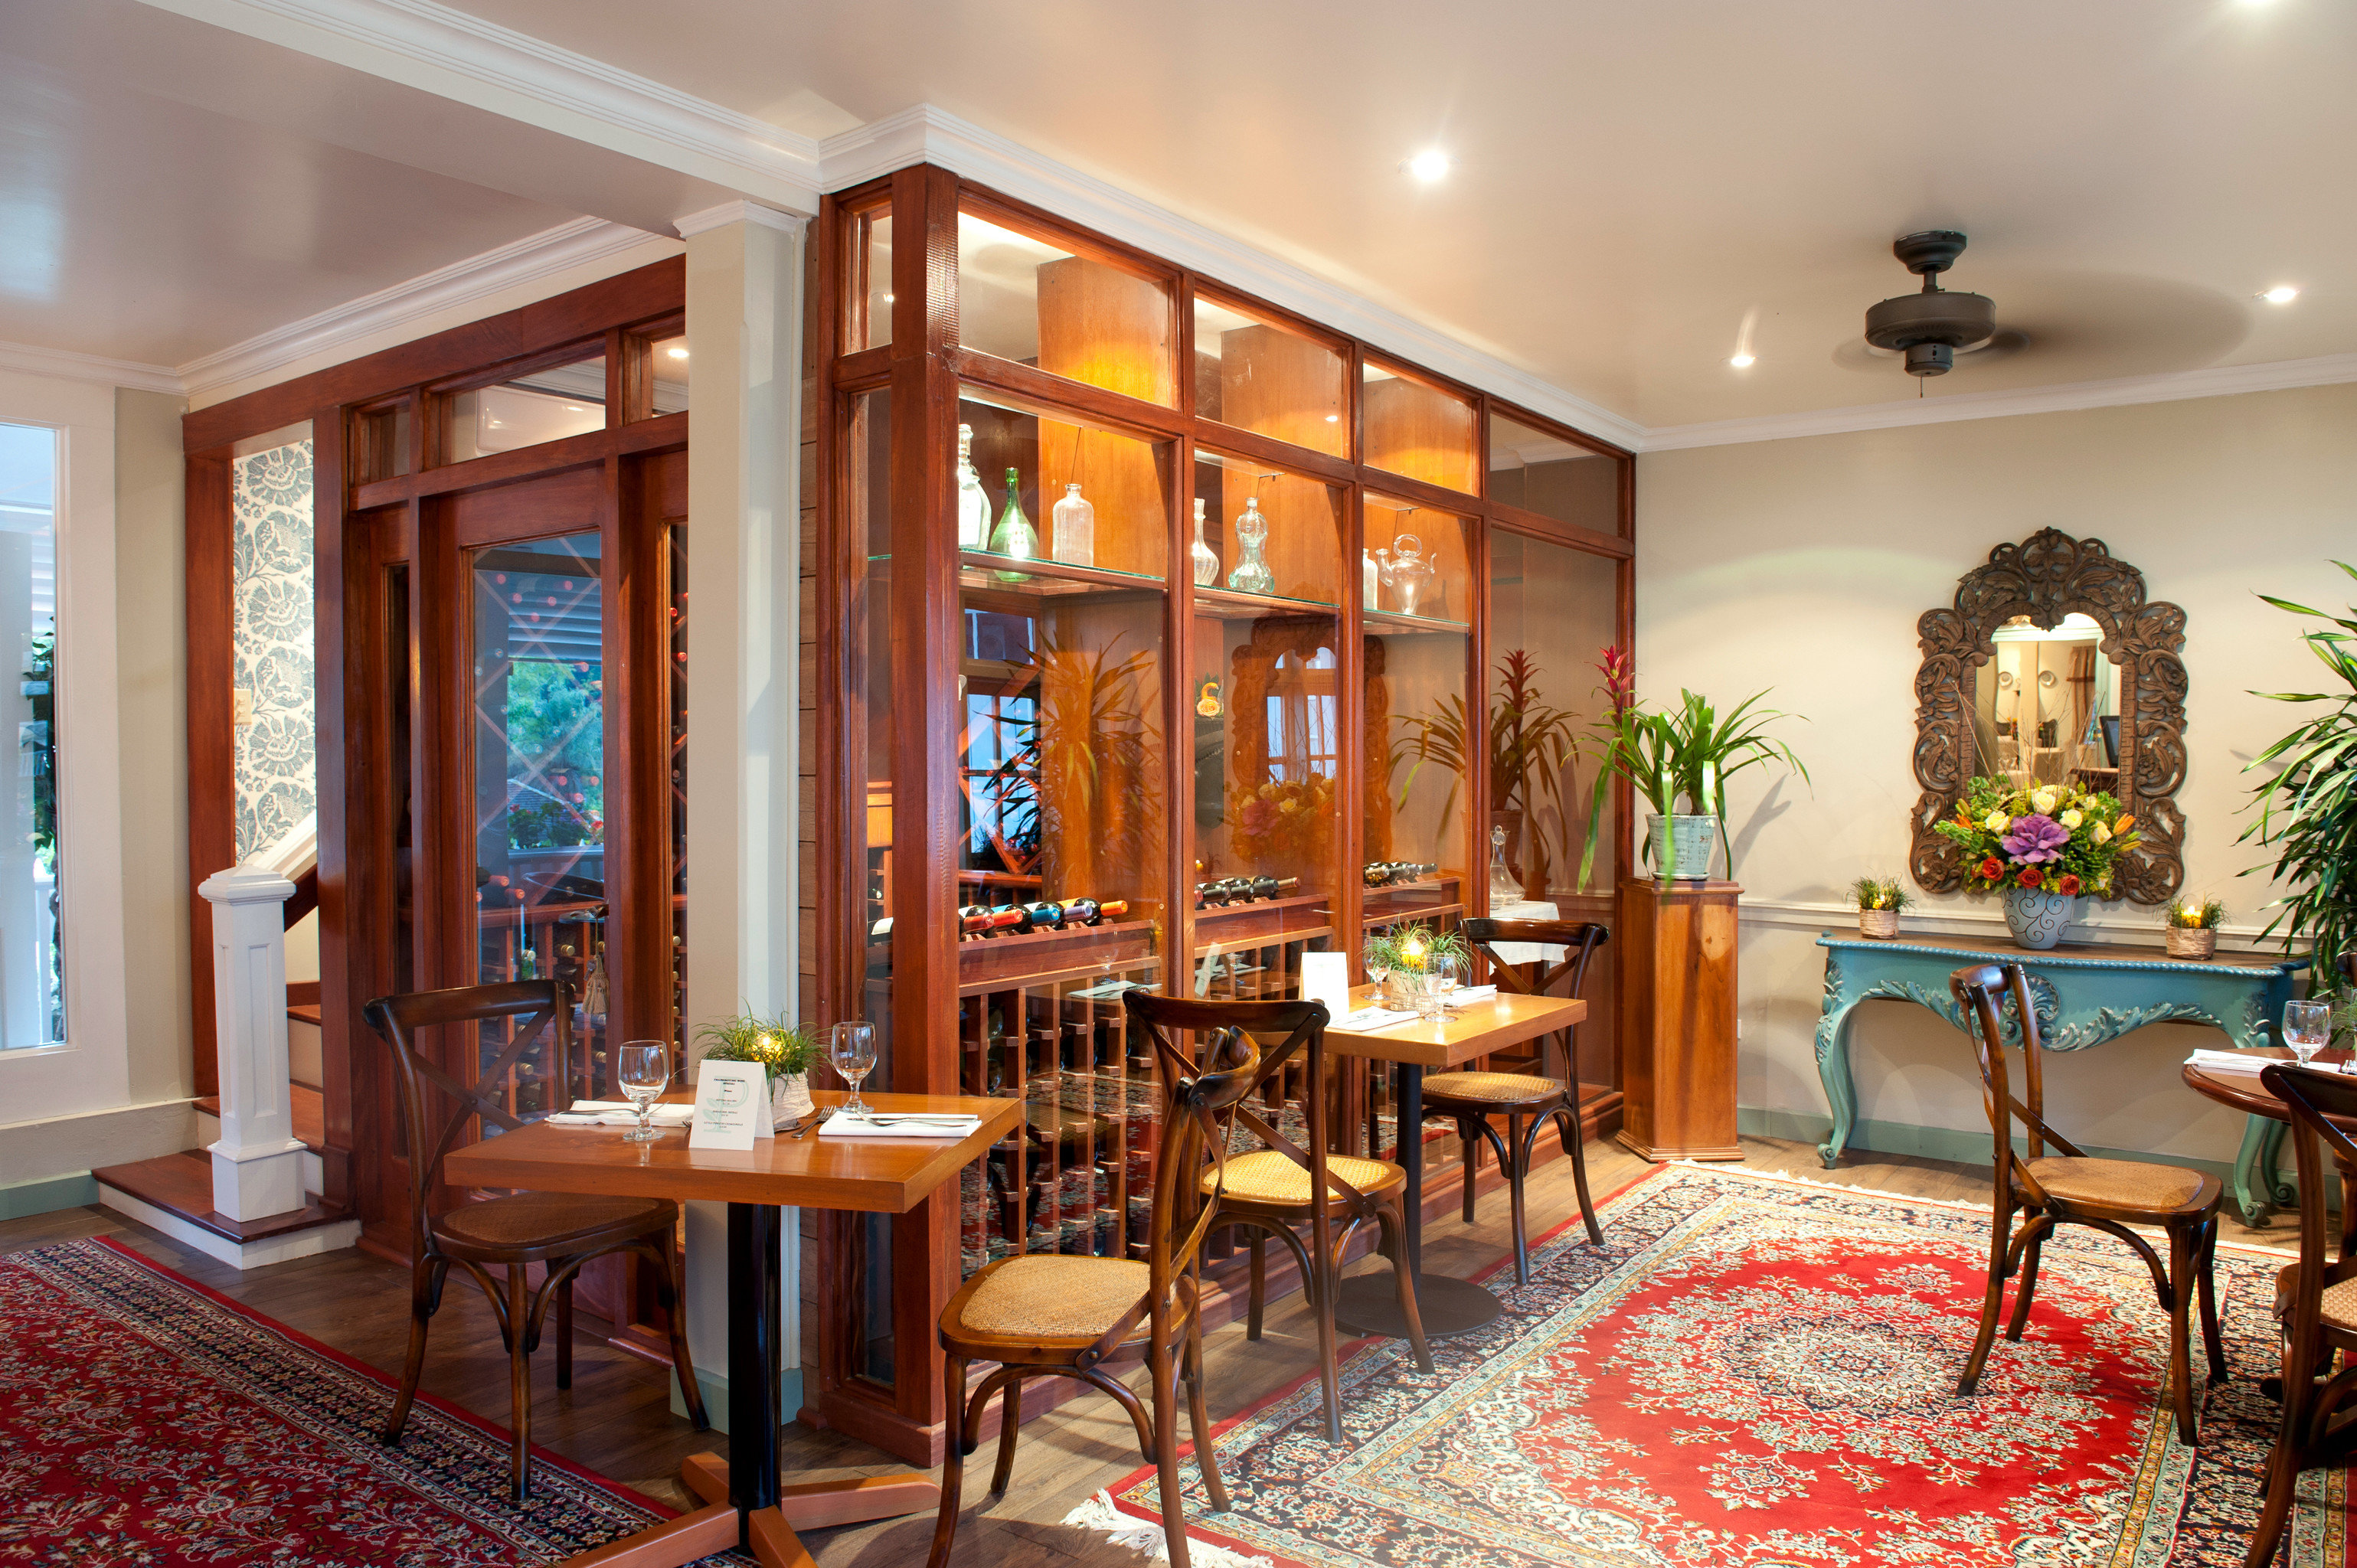 Classic Dining Drink Eat Wine-Tasting chair property Lobby home living room Resort restaurant mansion Villa dining table